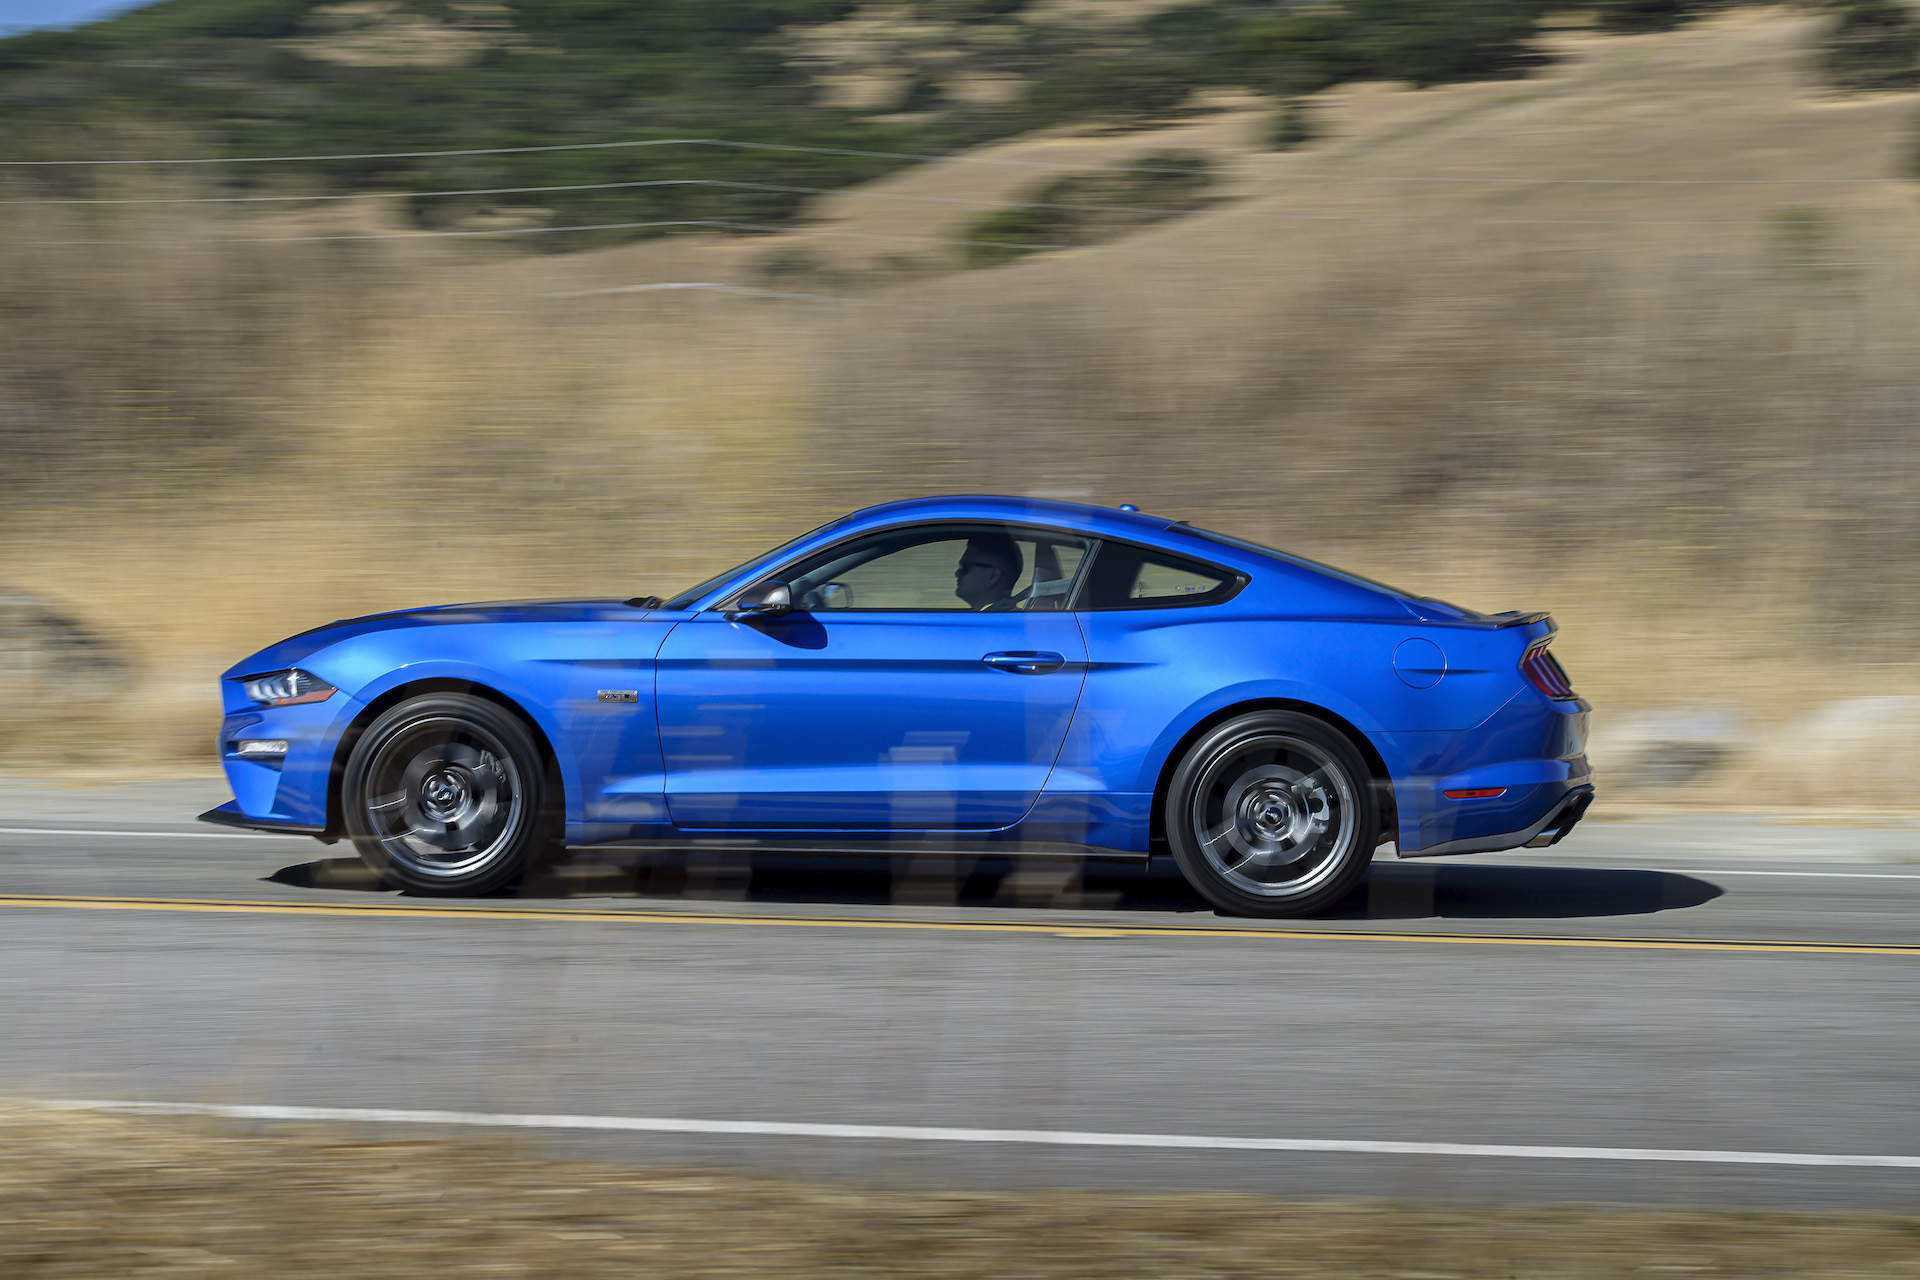 2020 Ford Mustang Gt Review.First Drive Review 2020 Ford Mustang 2 3 High Performance